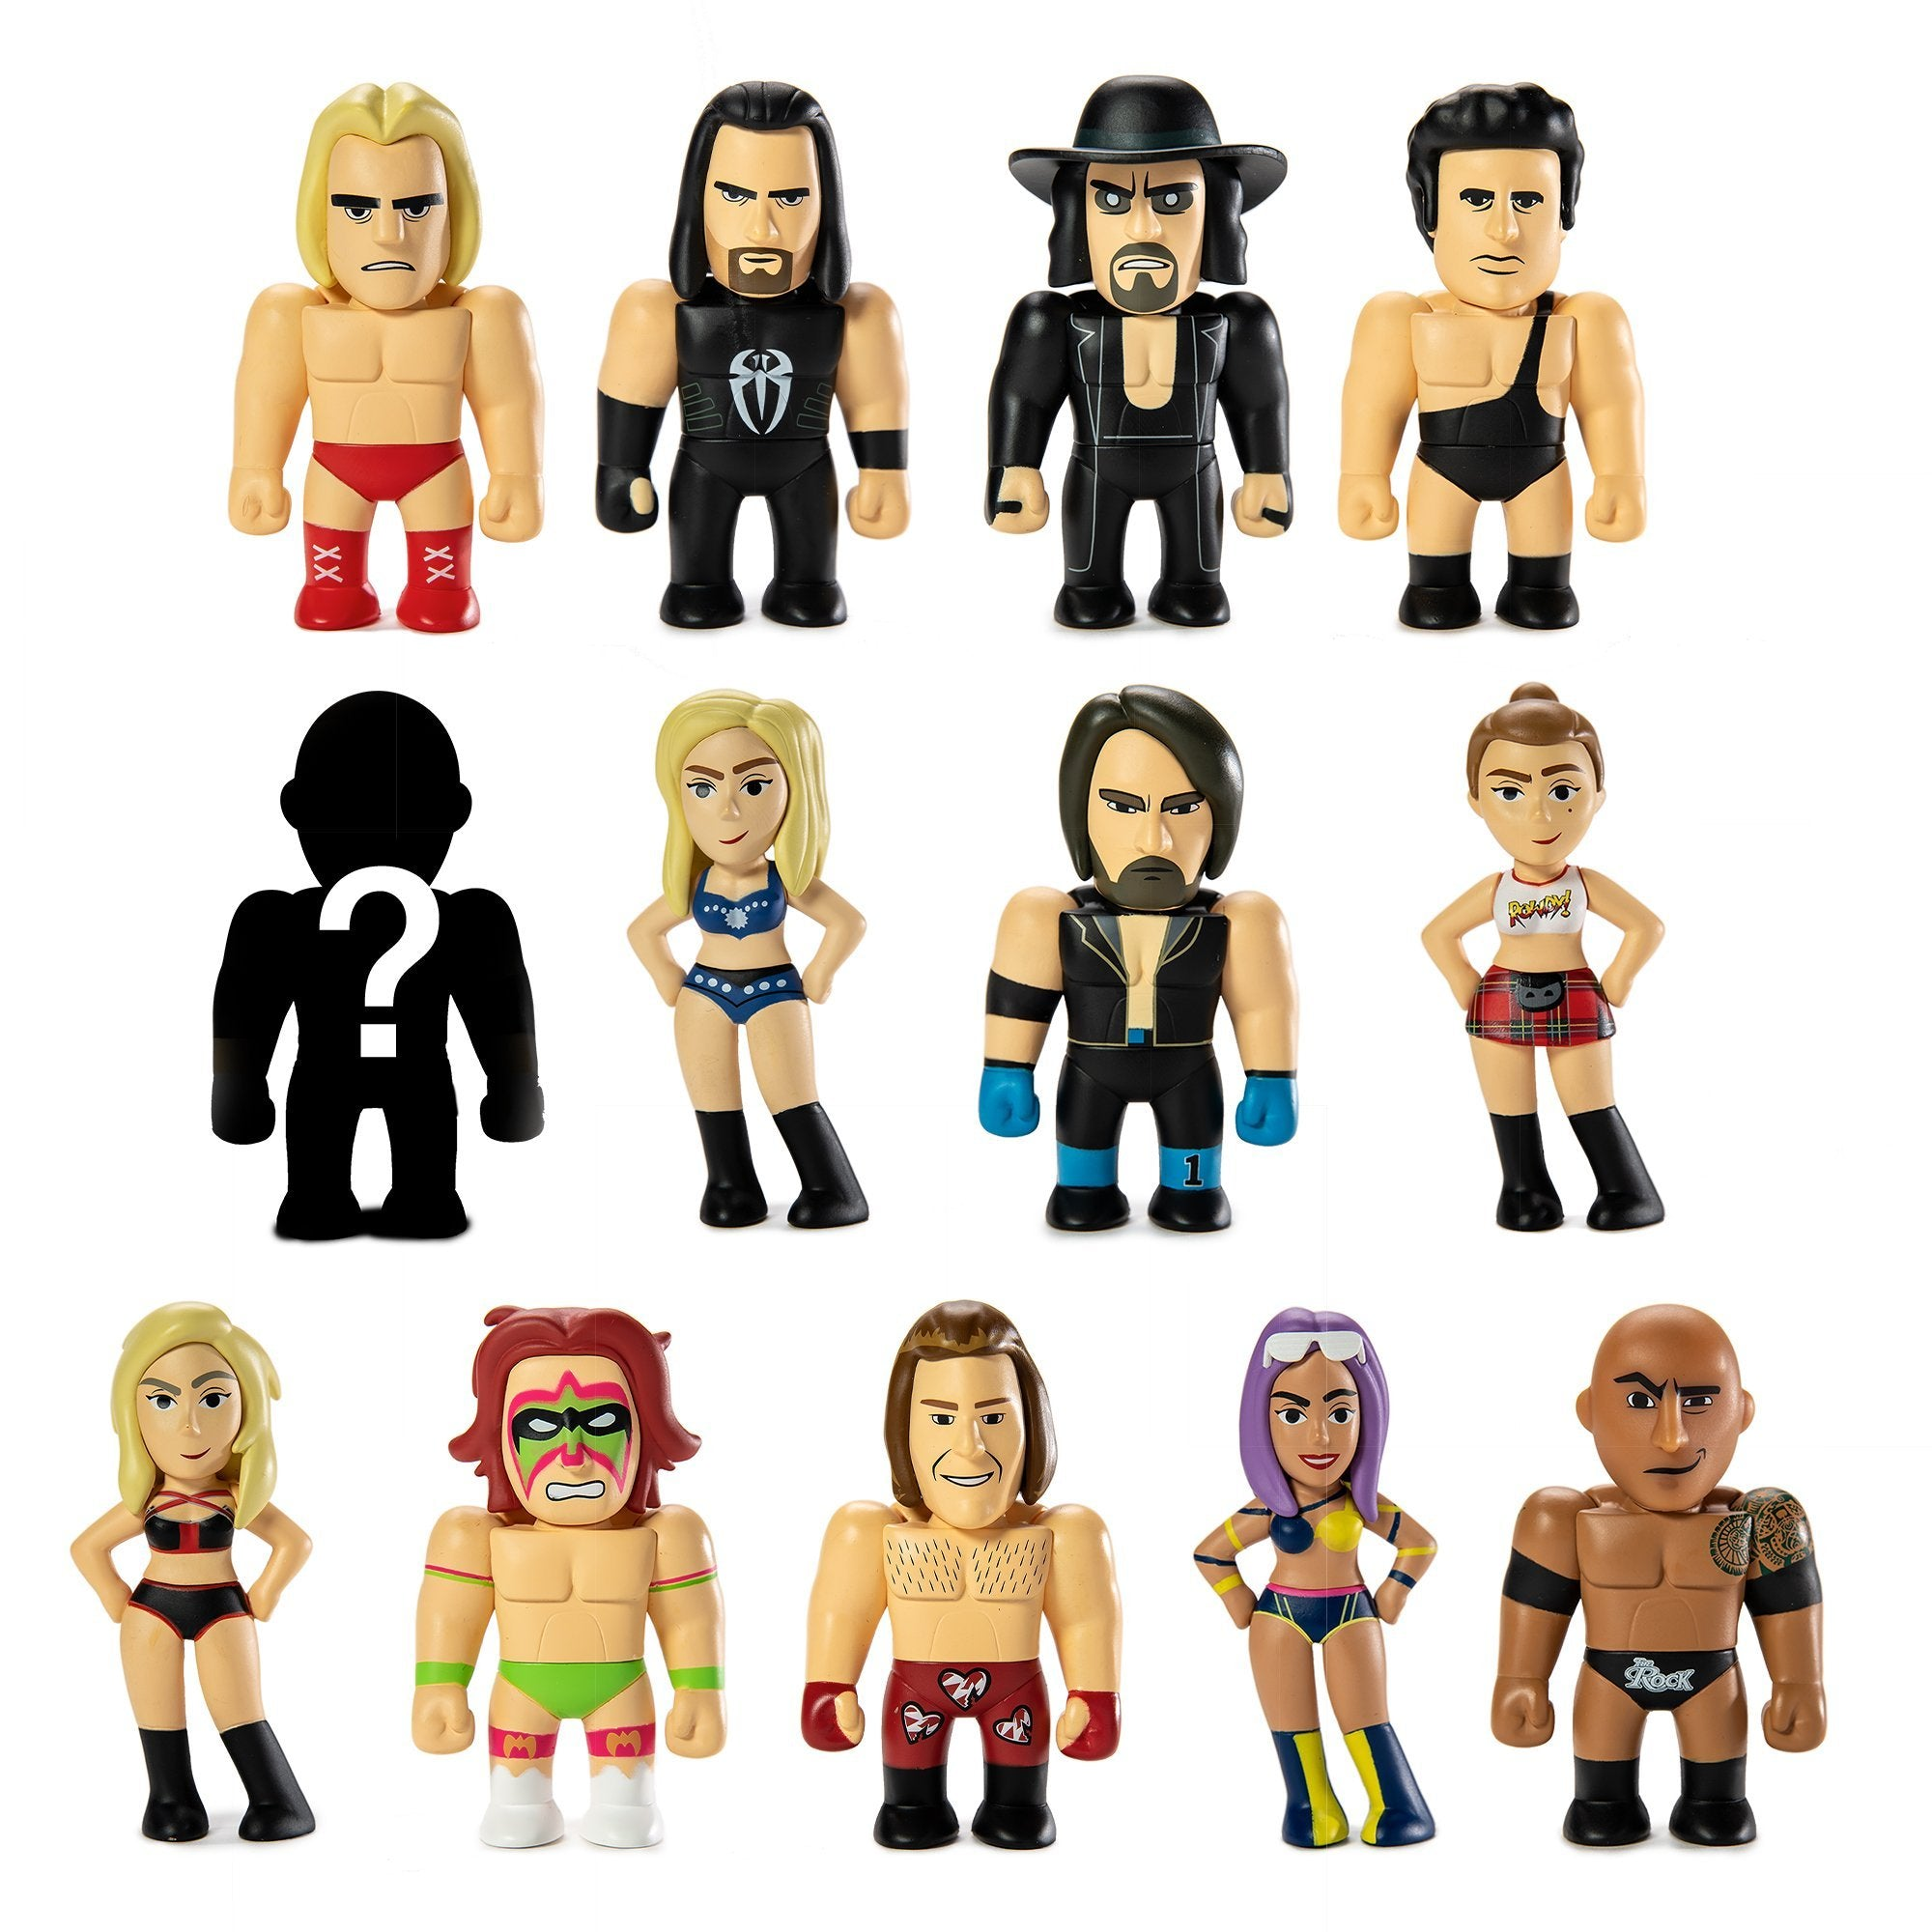 Wwe Collectible Vinyl Mini Figure Series By Kidrobot Kidrobot